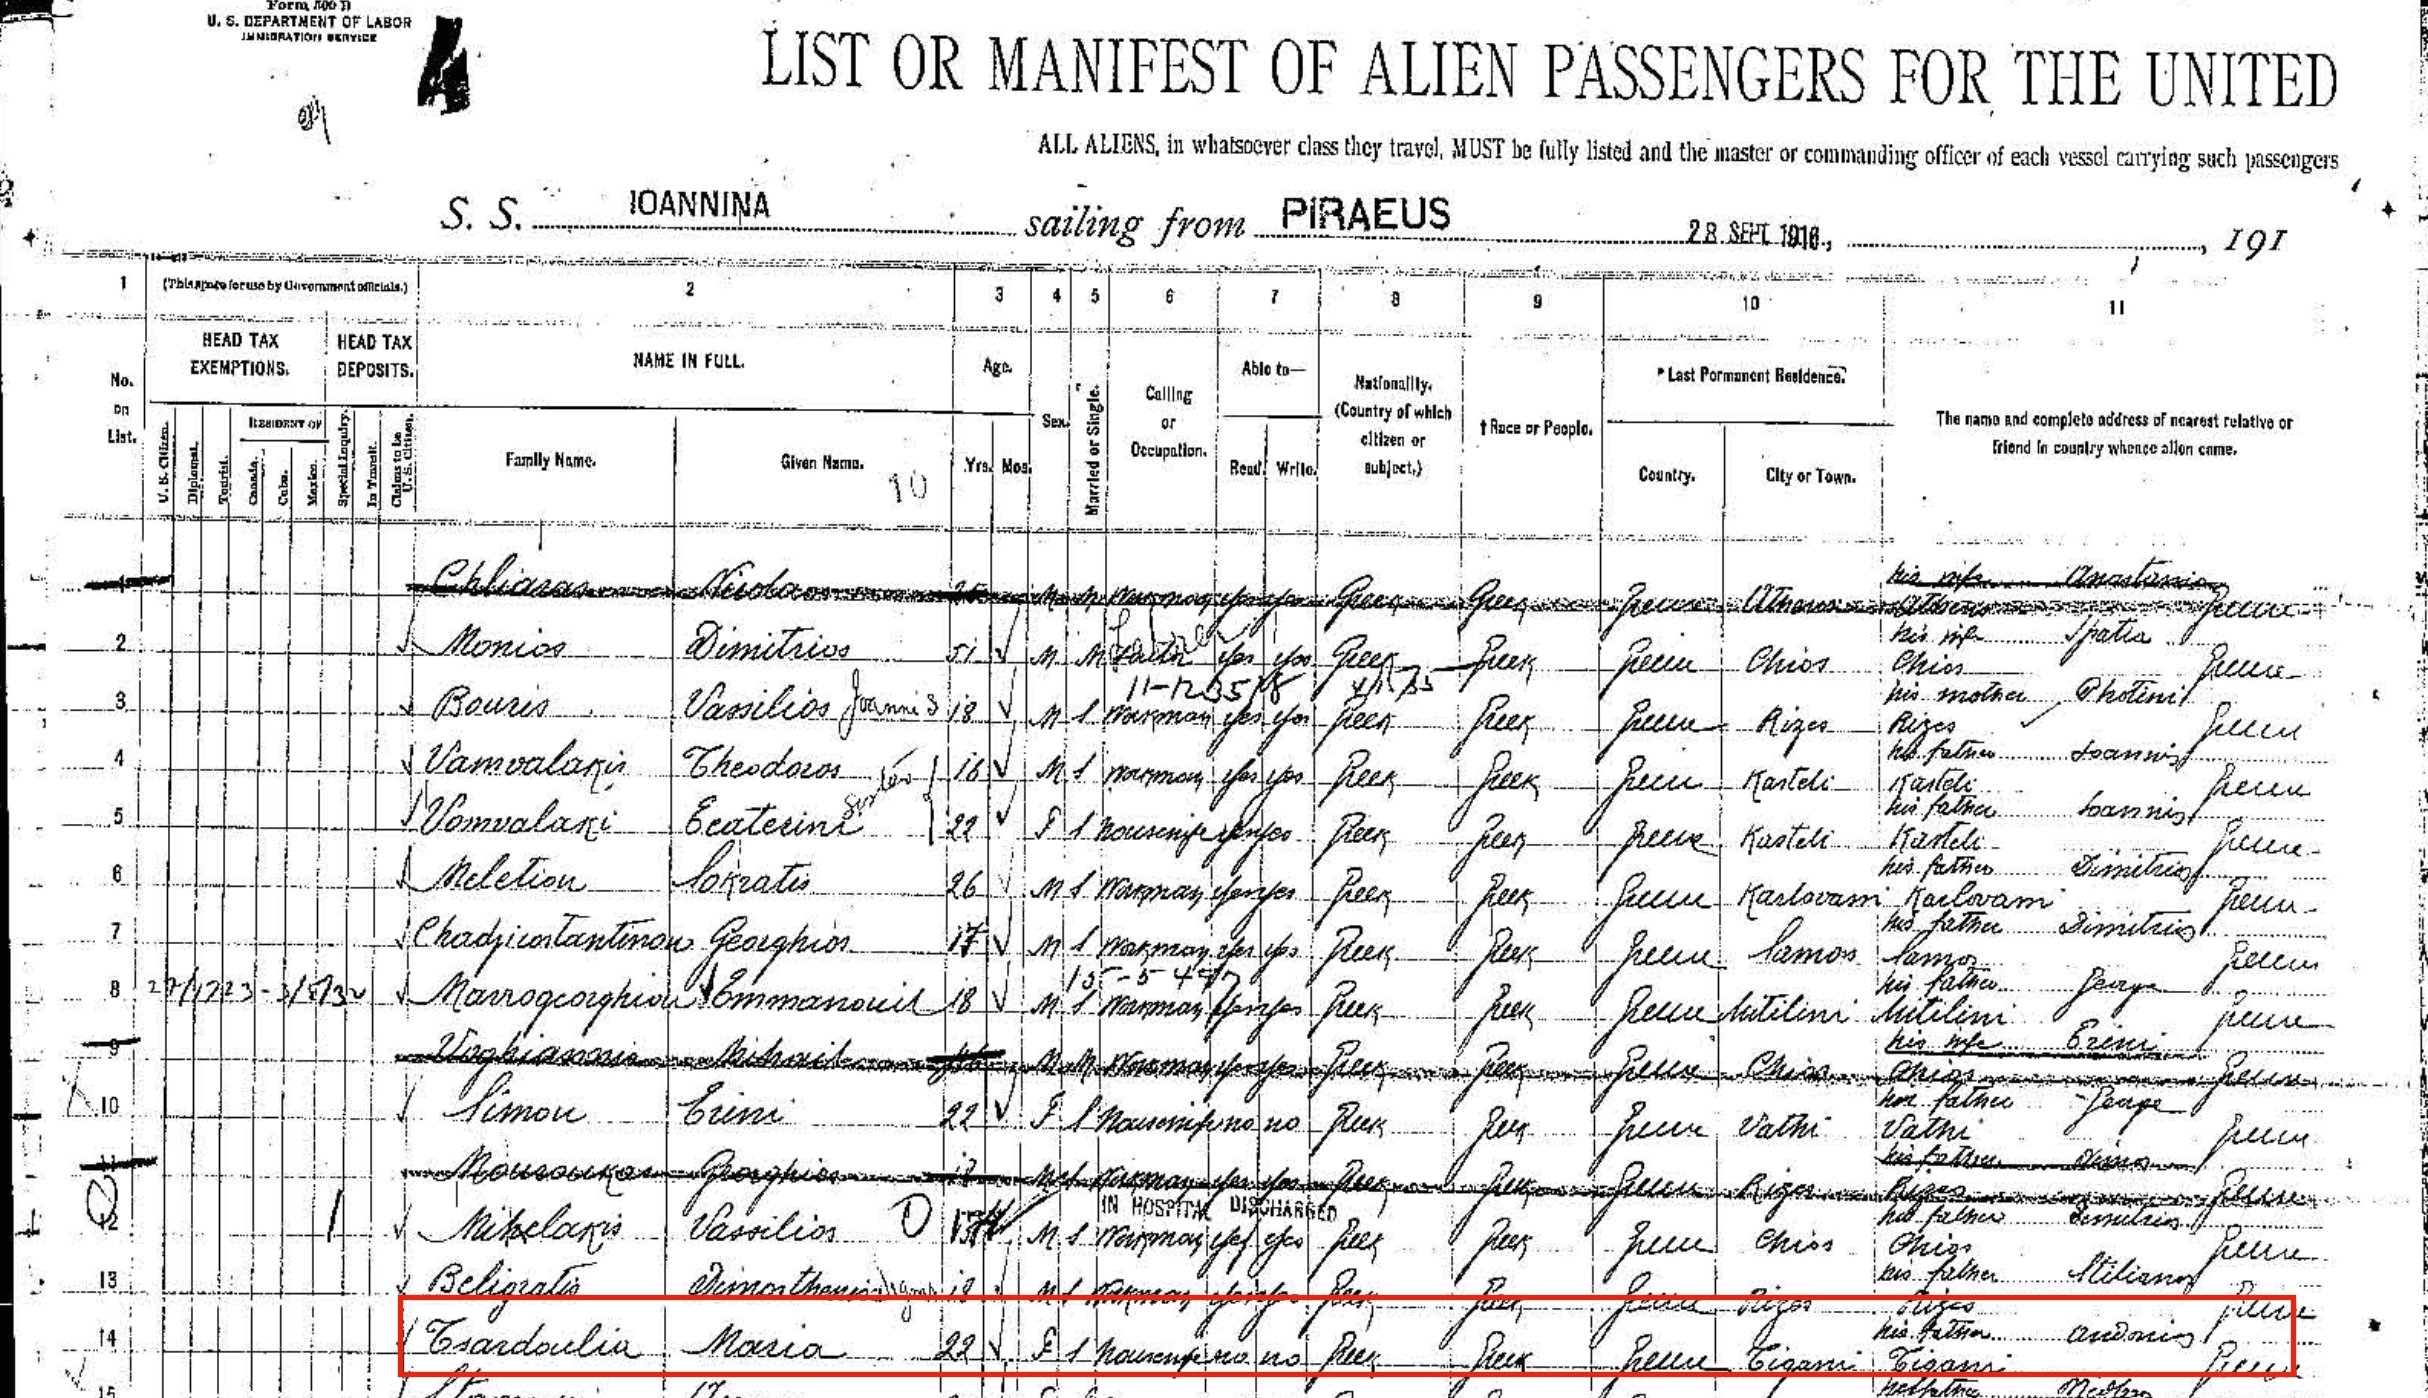 Passenger manifest for S.S. Ioannina - September 28, 1916 (page1)